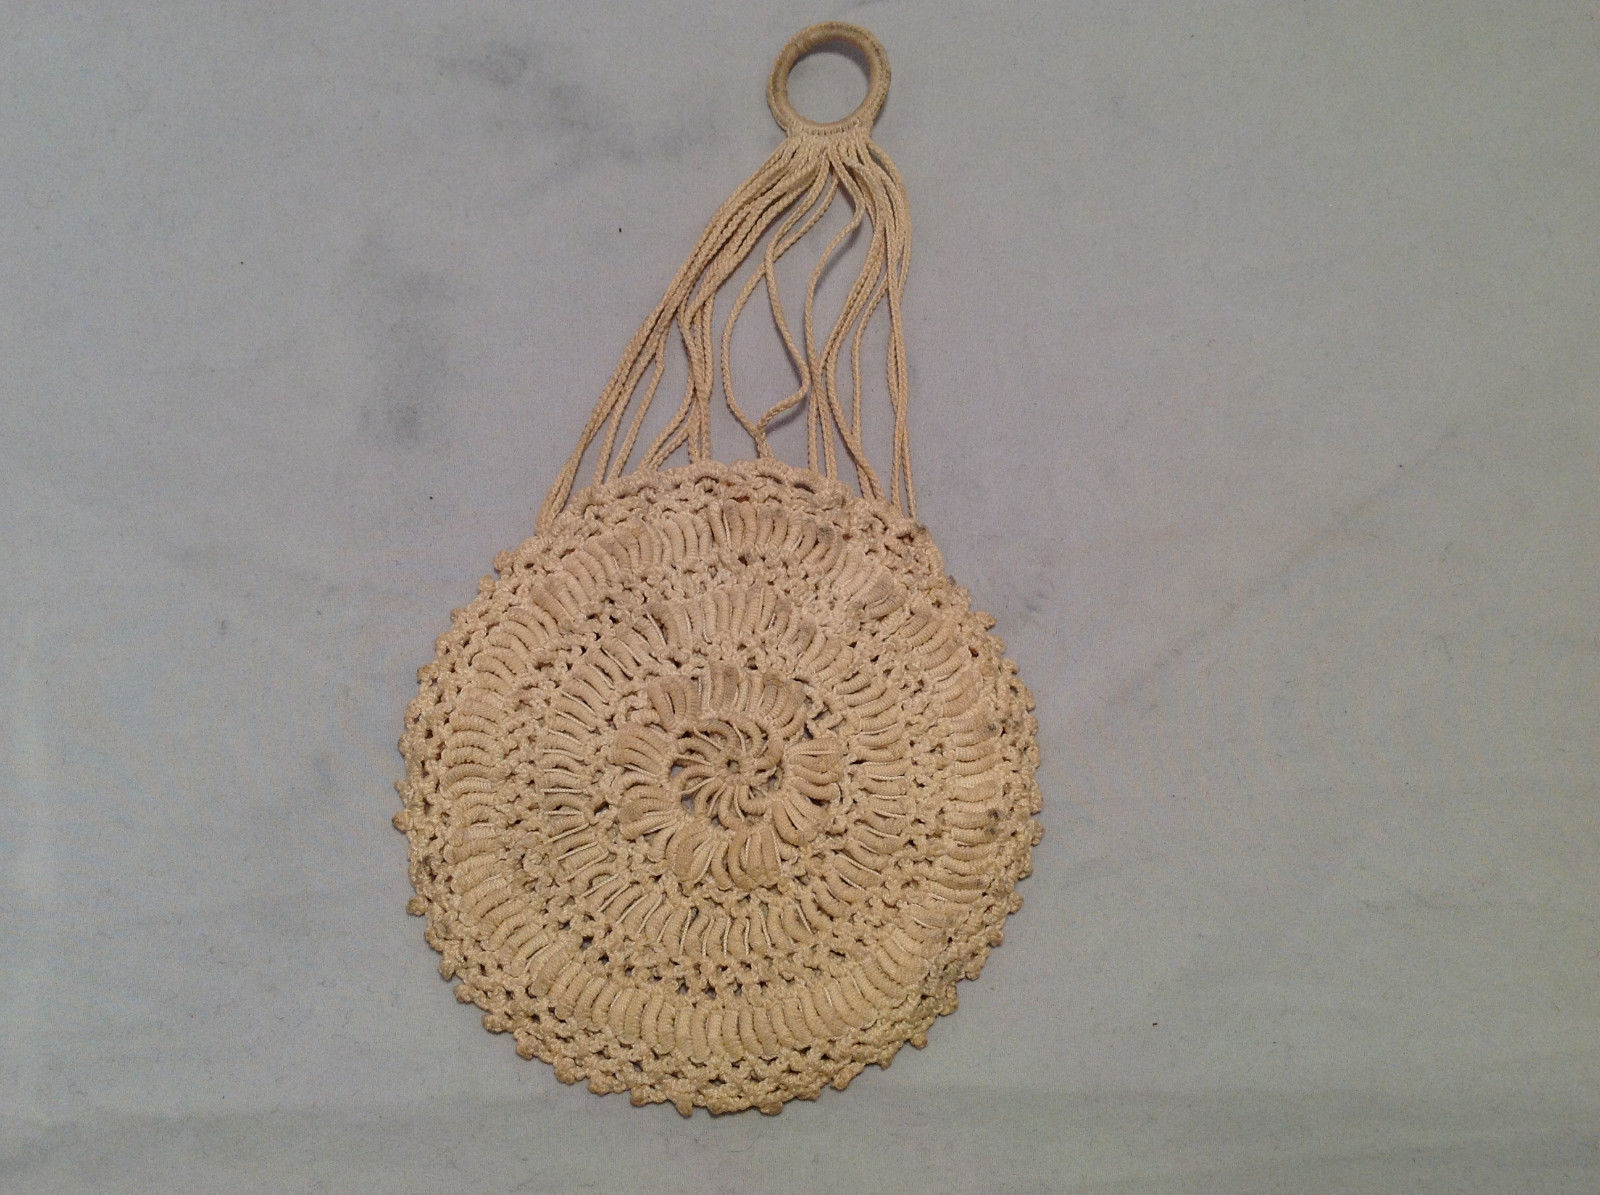 Vintage Boho Crochet Circle Purse Cream Off-White w/ Hanging Ring Rope Straps